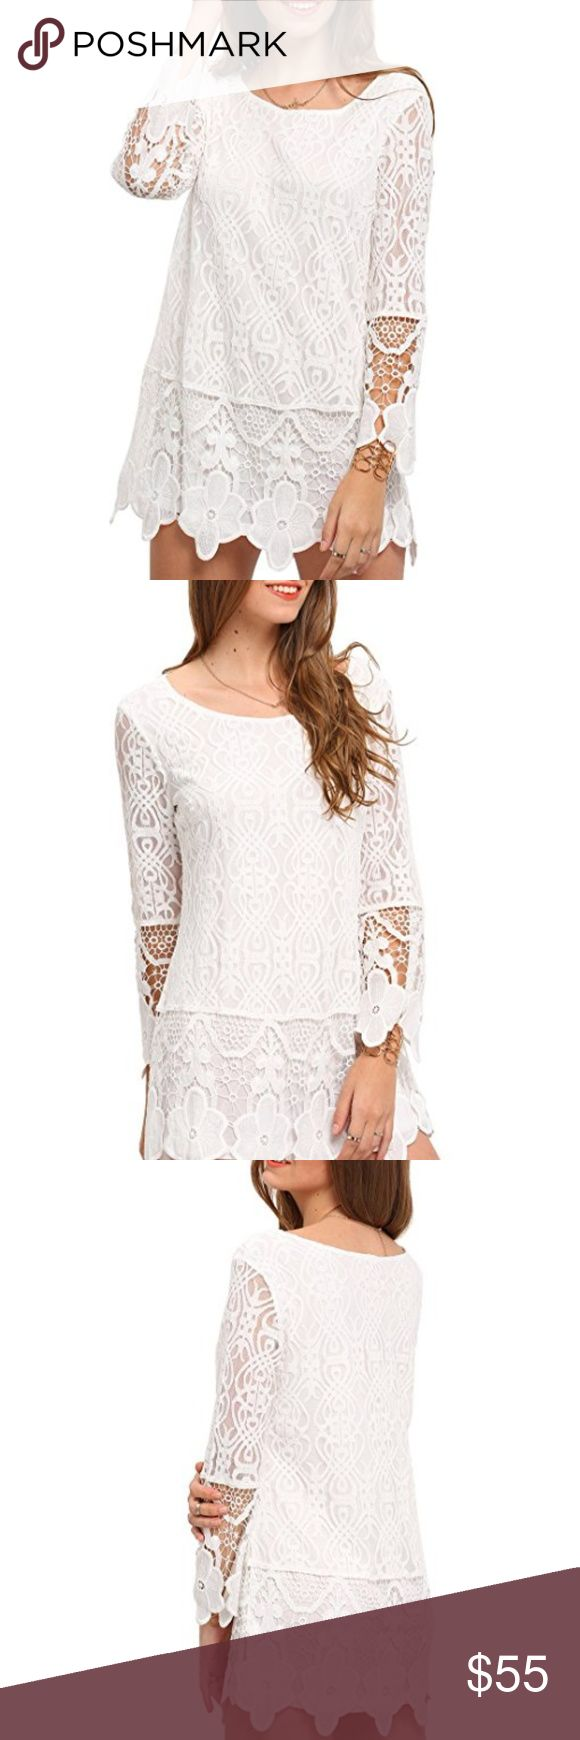 NWT Women's White Tunic Lace Dress Top Figure flattering tunic top, can be worn over leggings, or as a dress Crochet lace, floral Pure white color, lace throughout Casual, round neck, long sleeve, loose fit Xcel Couture Tops Blouses